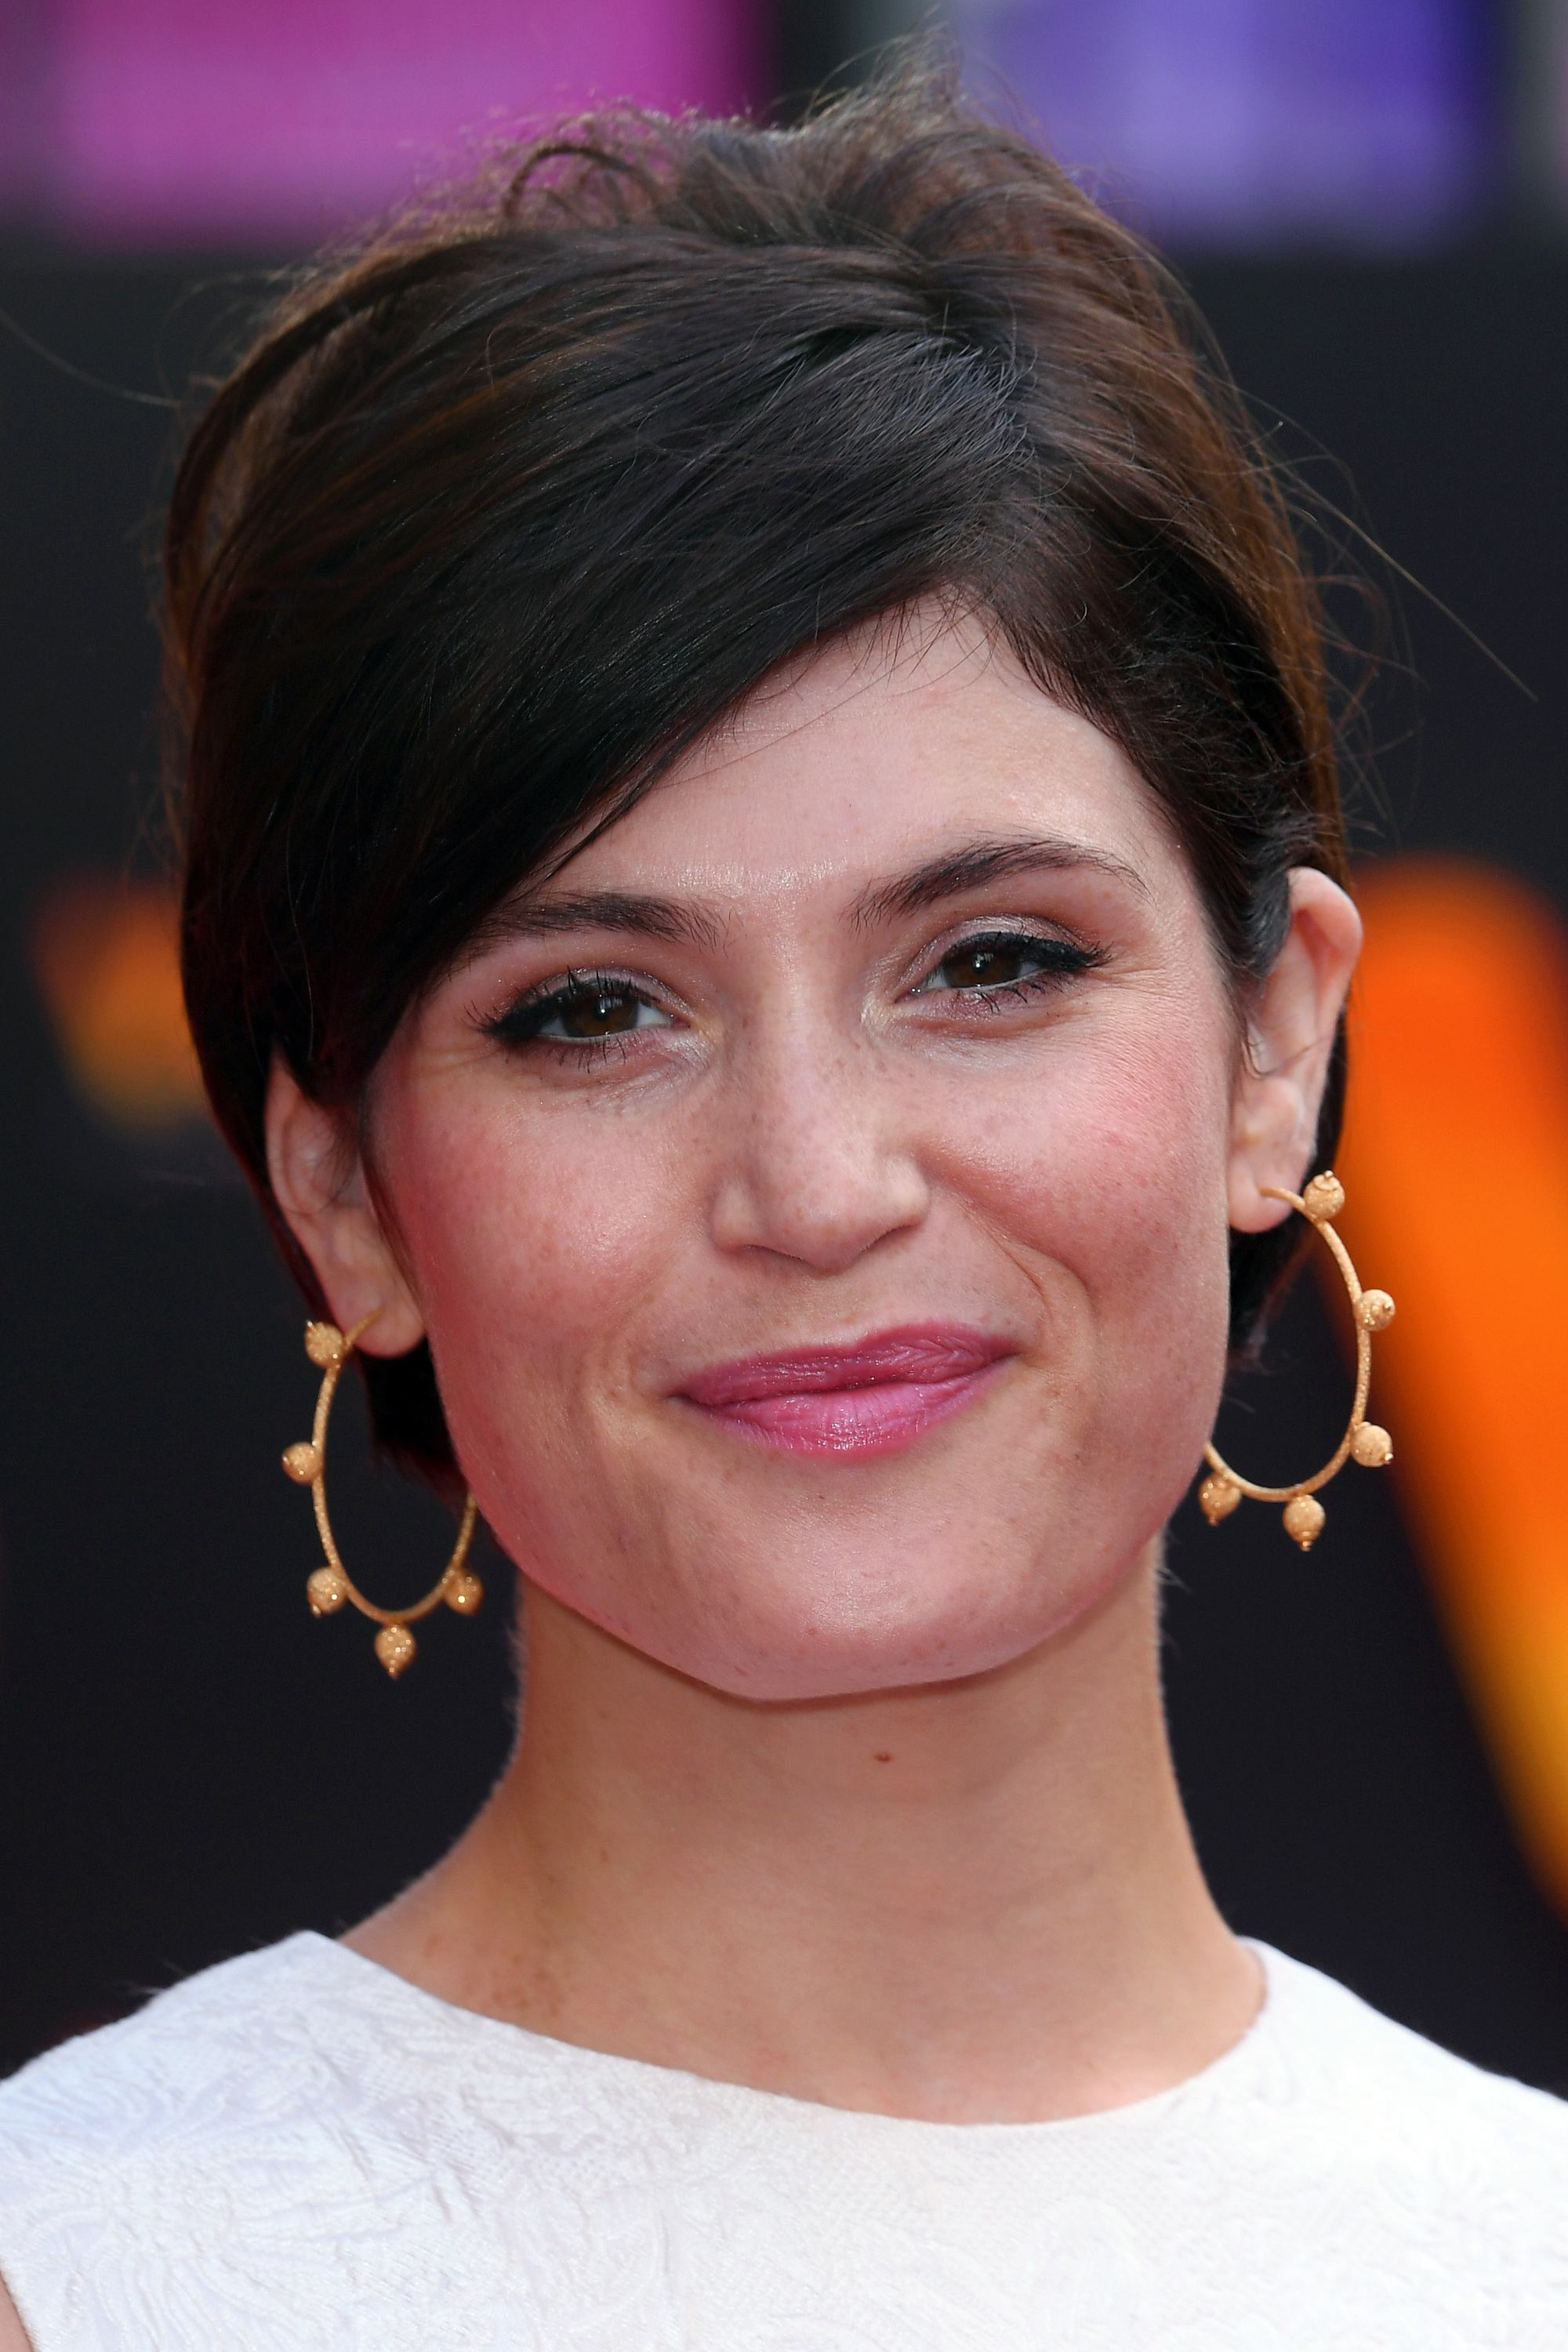 british actress gemma arterton with her dark brunette hair in an updo with side bangs